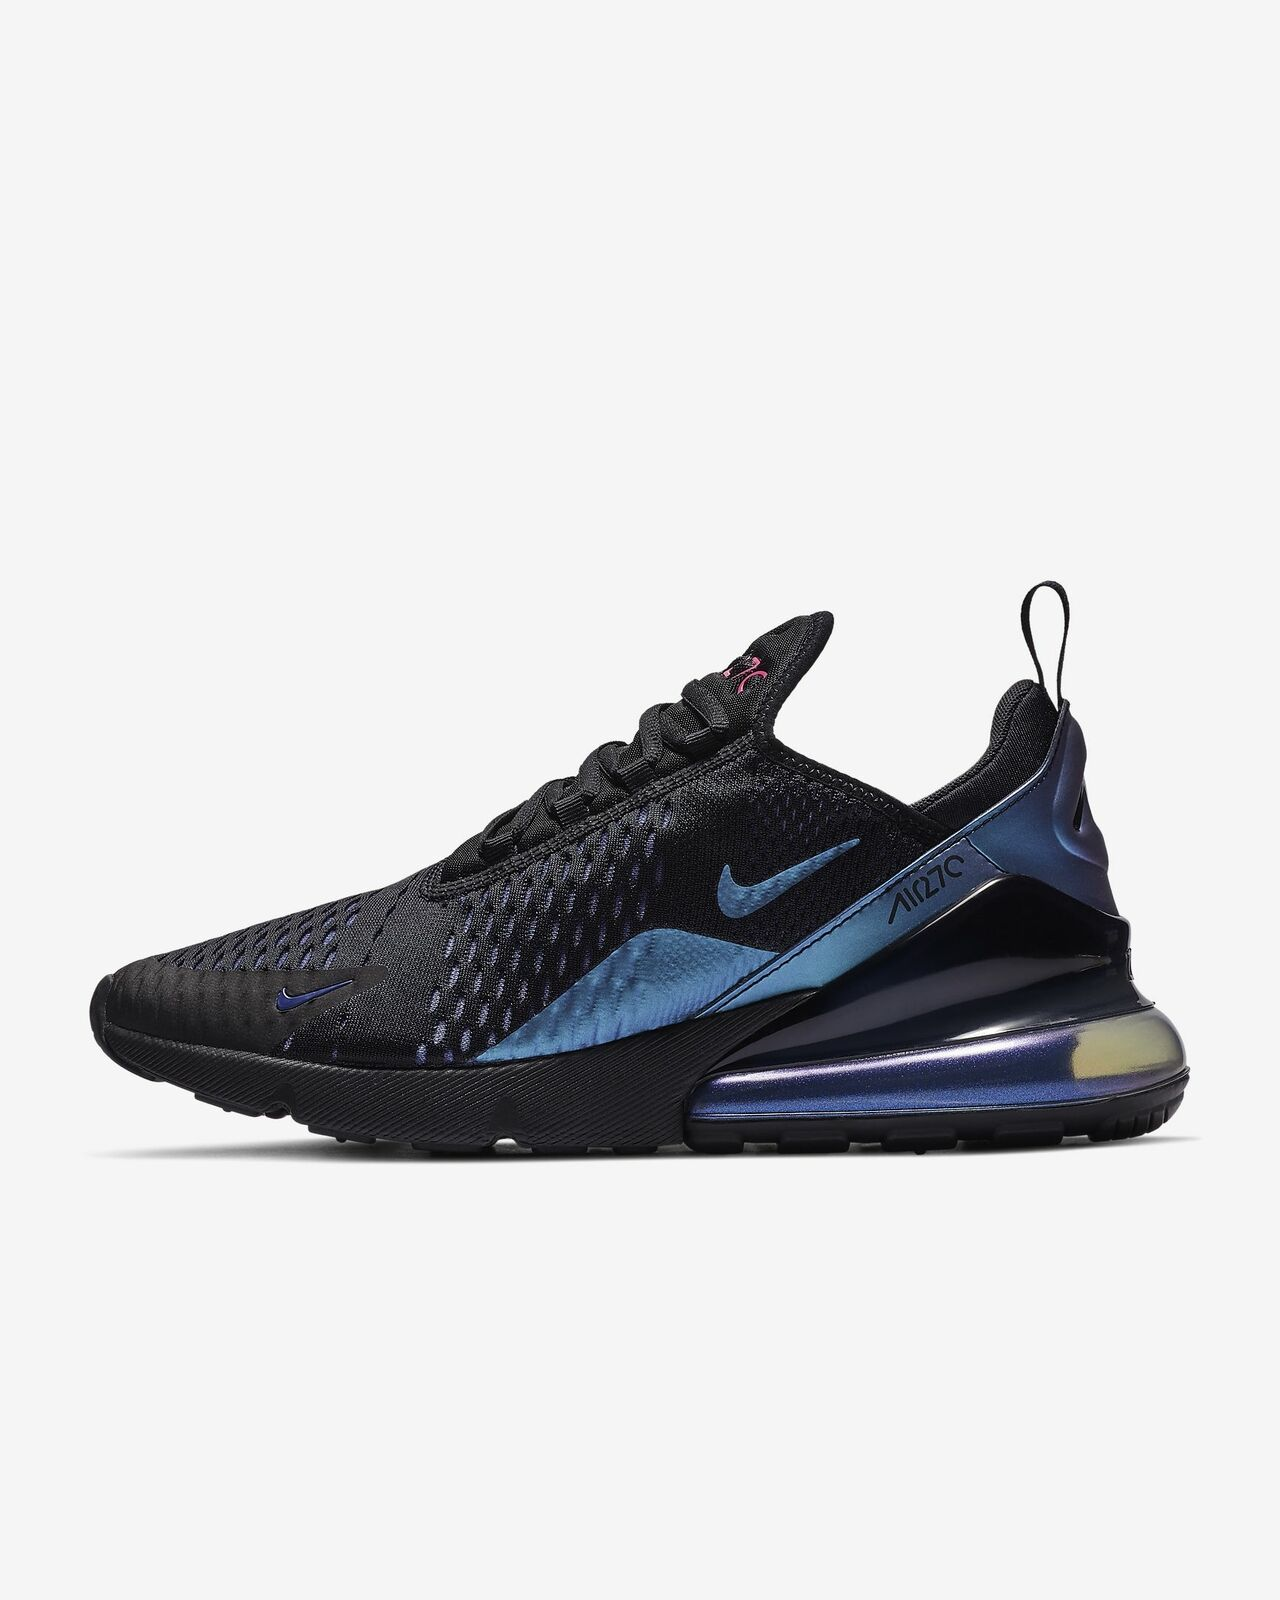 0e35653a9d NIKE AIR MAX 270 AH8050-020 BLACK LASER FUCHSIA REGENCY PURPLE THROWBACK  FUTURE